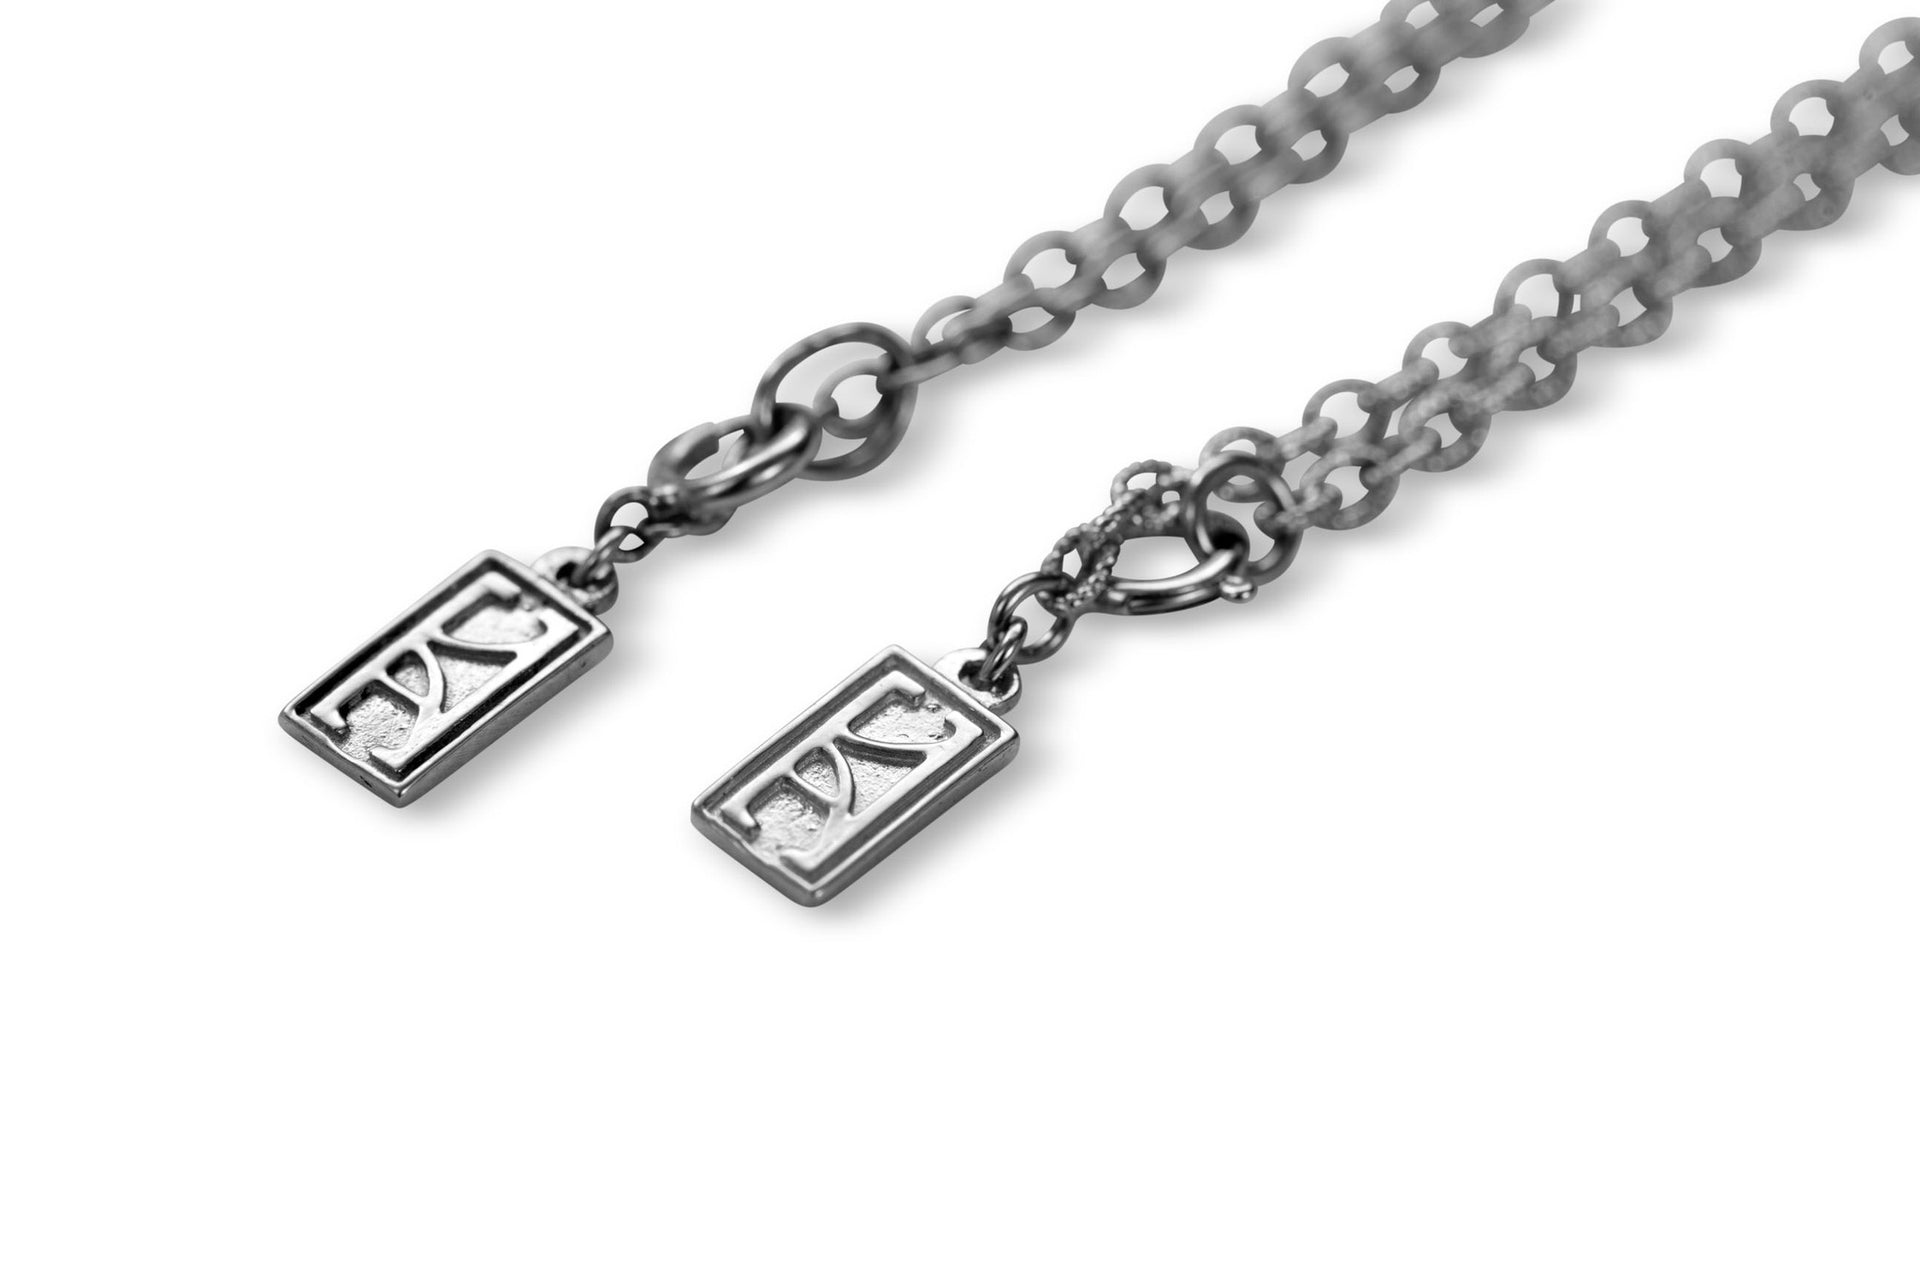 14 KT White Gold necklace by KarenAsh New York